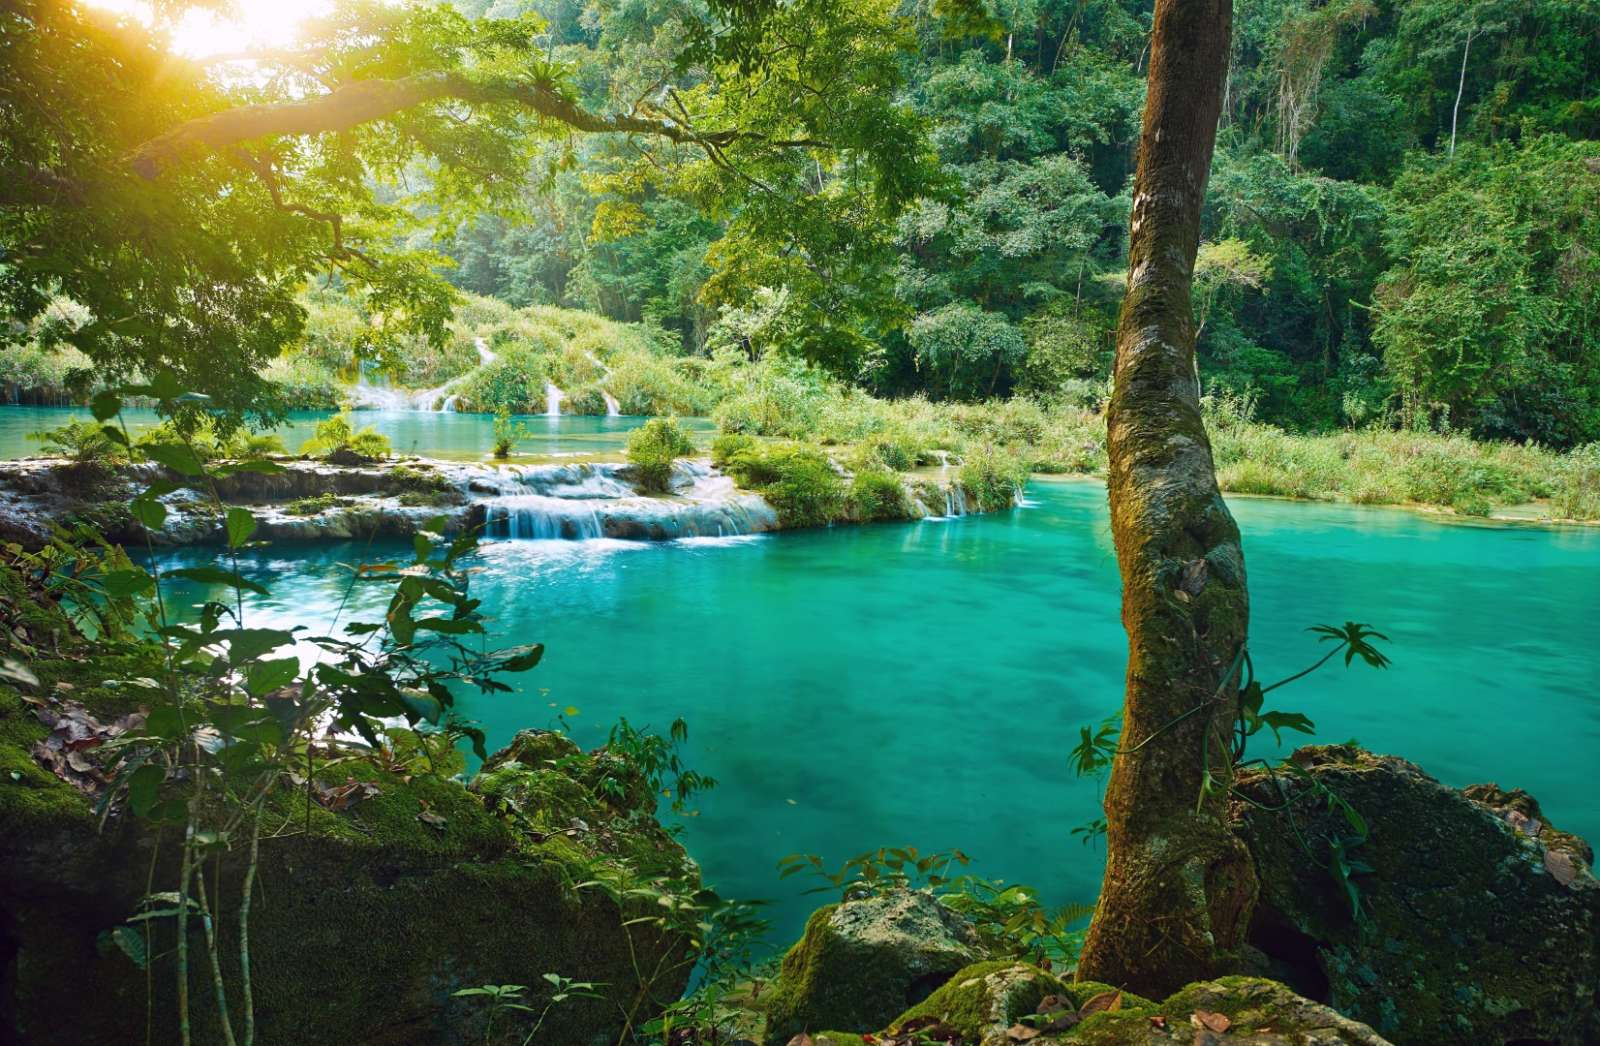 Beautiful natural pool at Semuc Champey in Guatemala